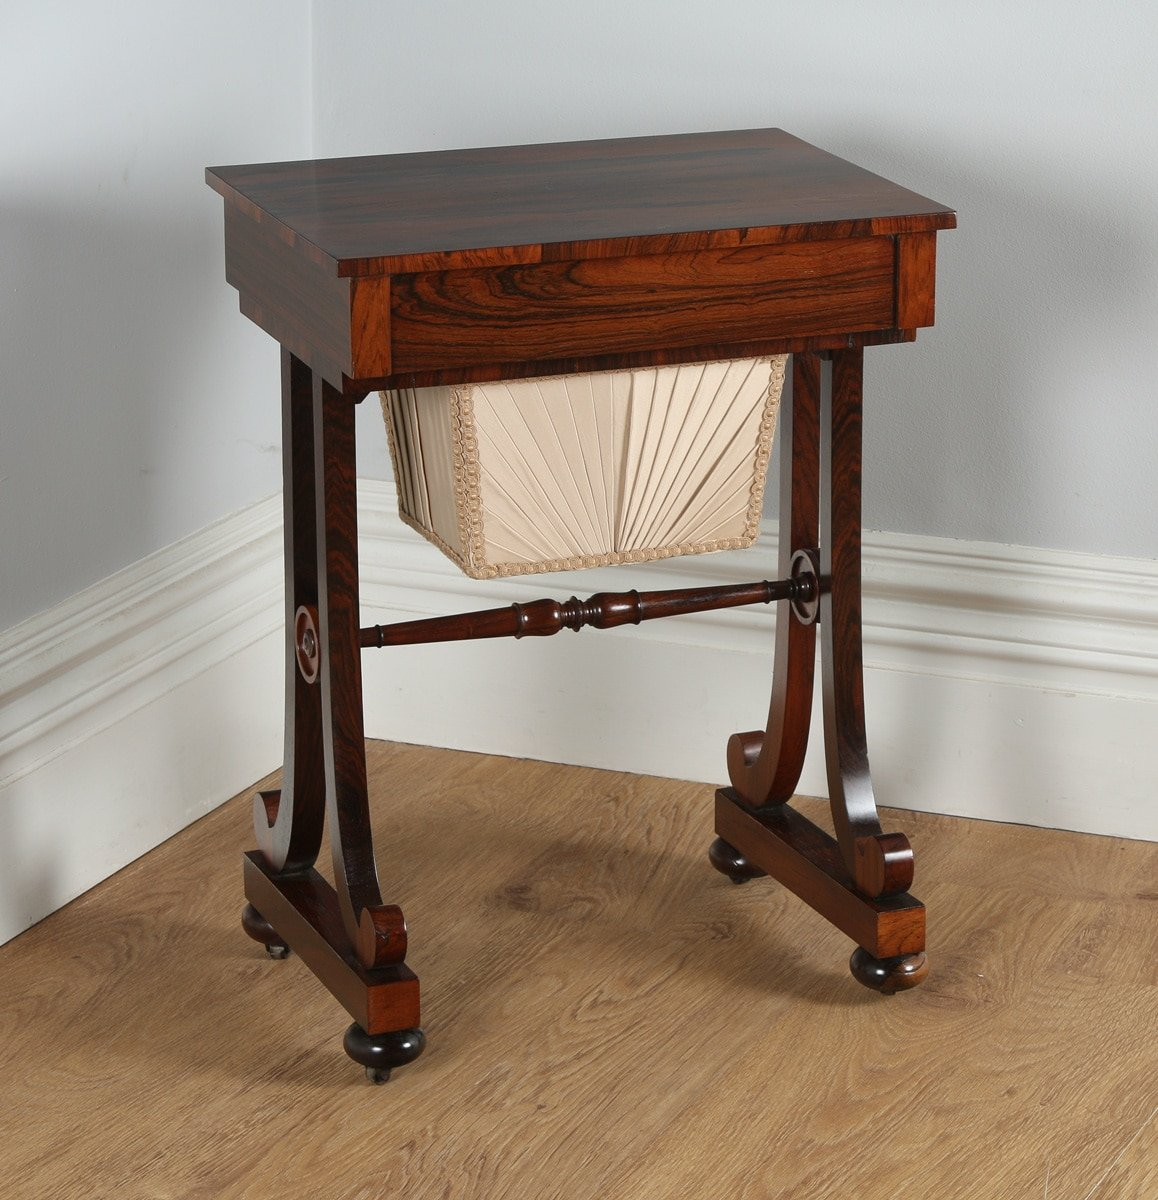 Antique Regency Rosewood Ladies Sewing Worktable (Circa 1820)